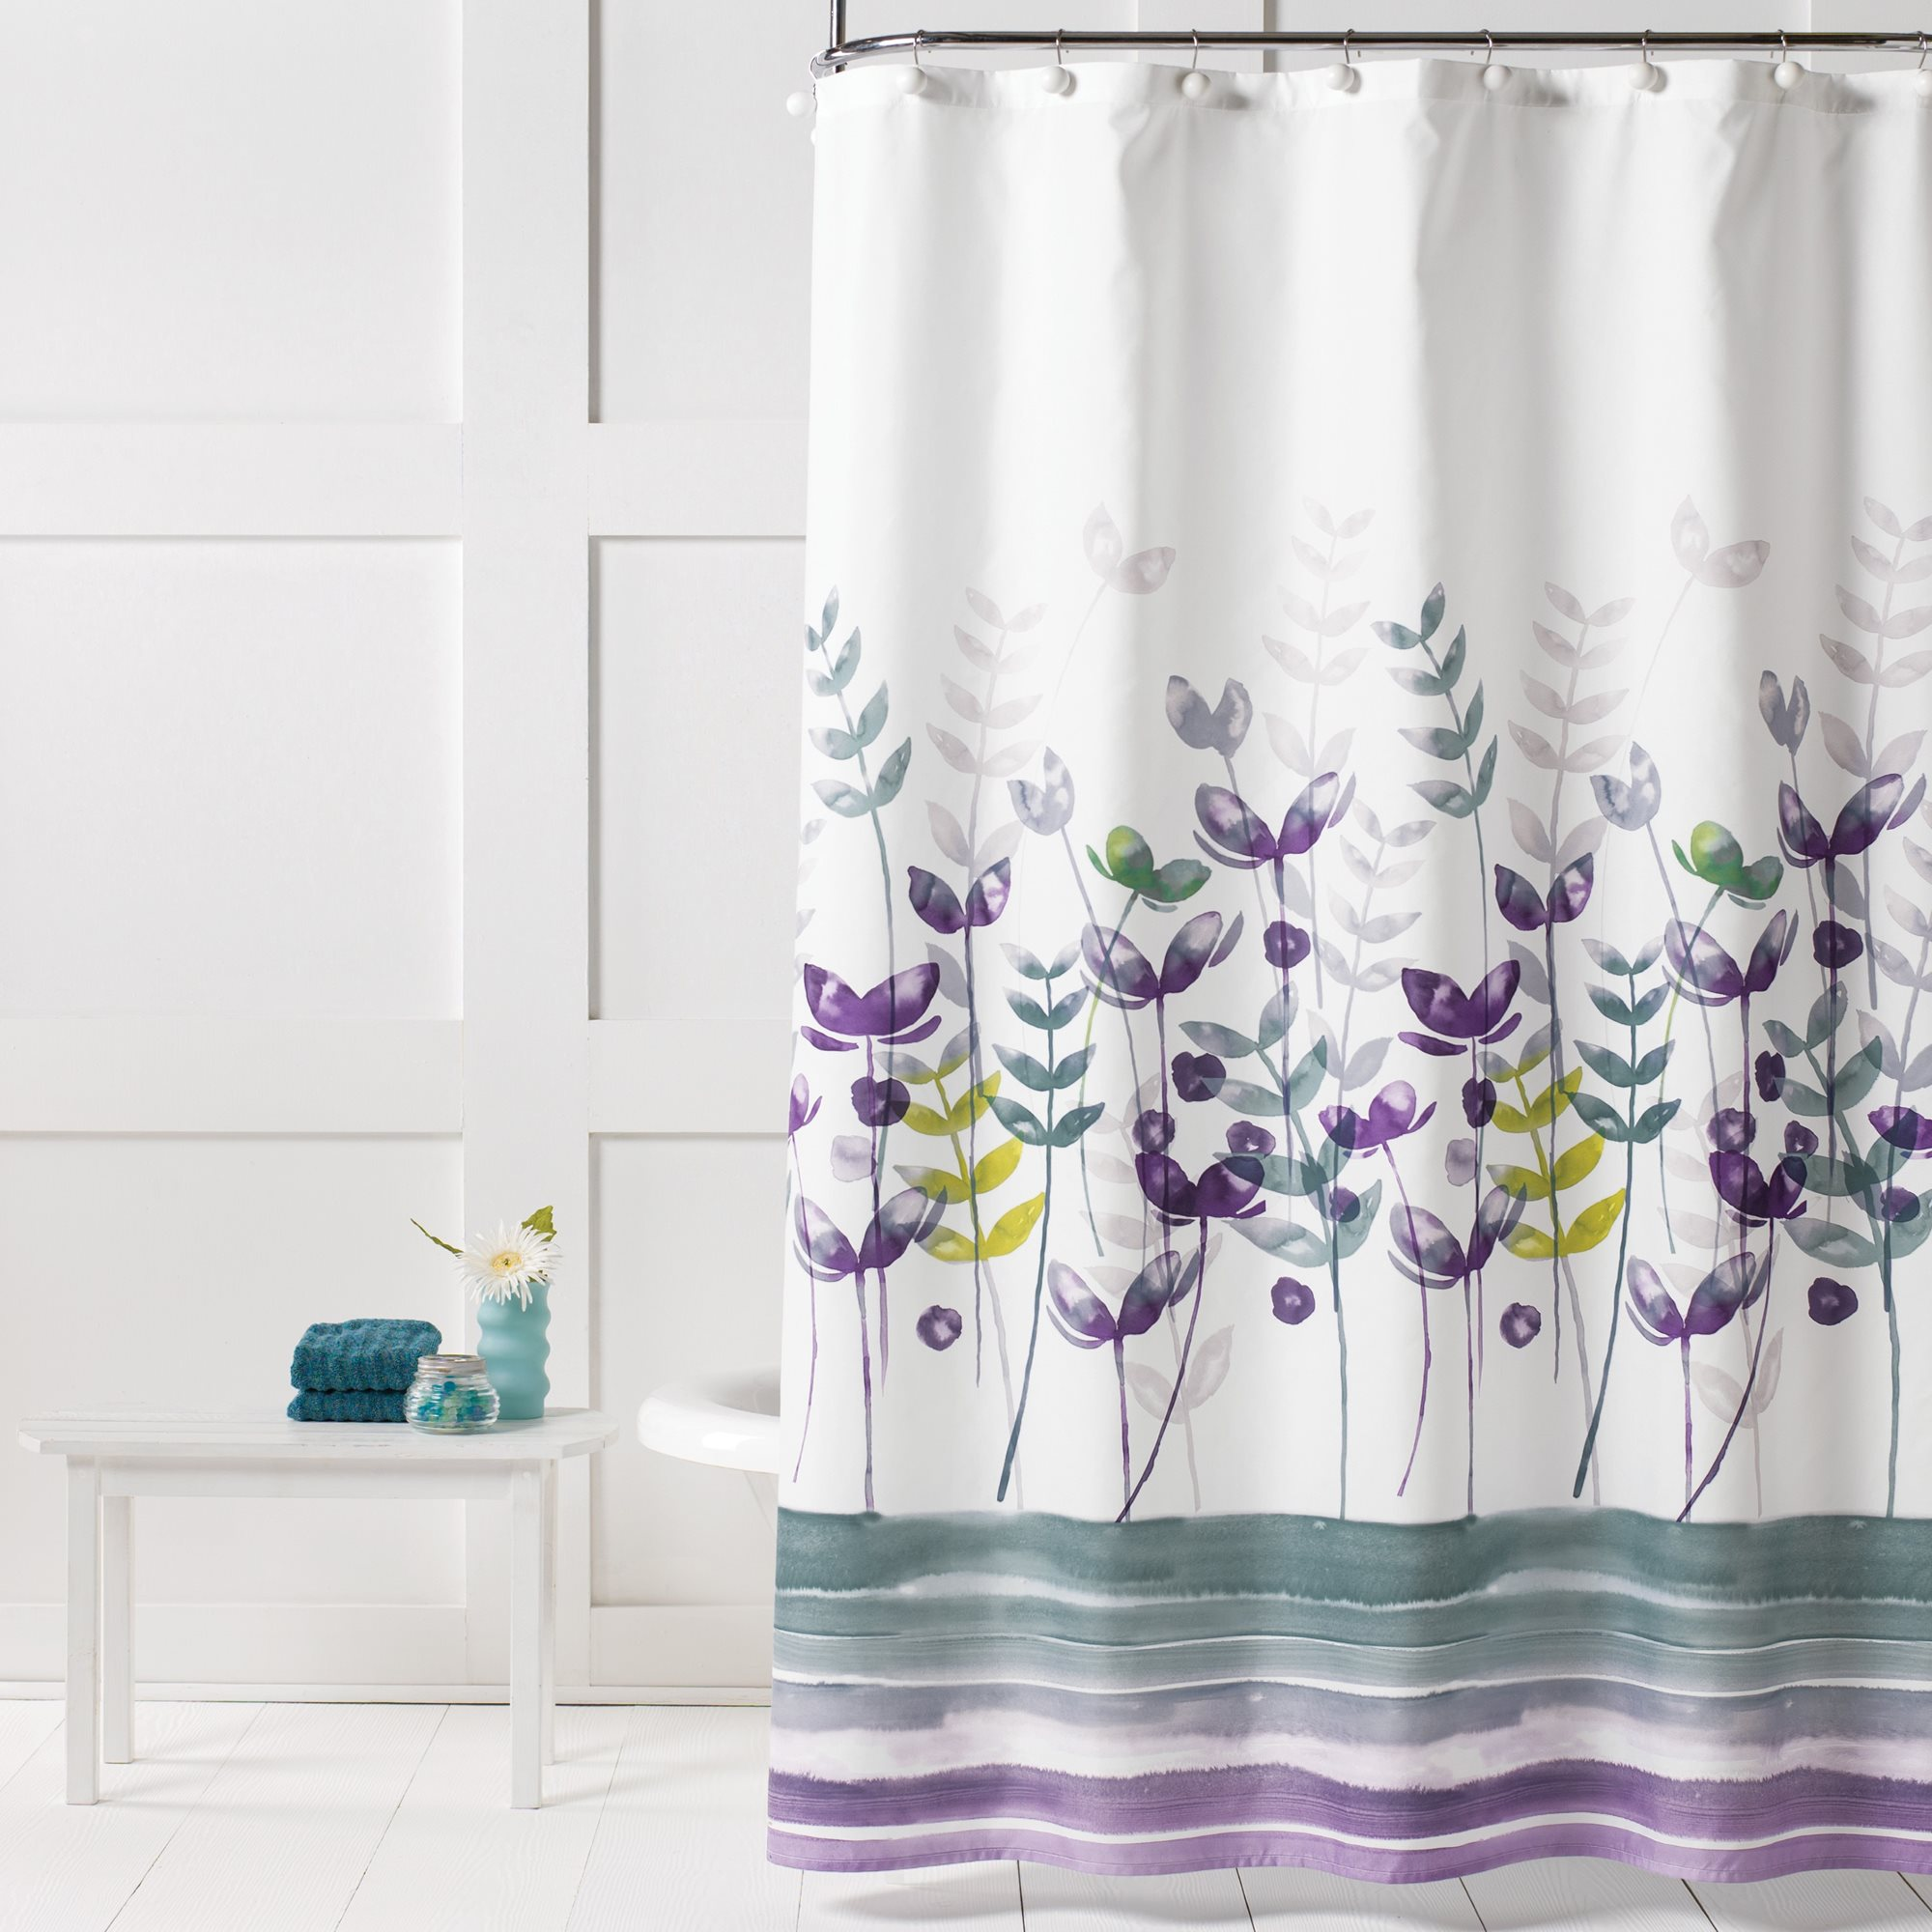 Details About Saturday Knight Ltd Watercolor Meadow Fabric Shower Curtain 70x72 Multicolor